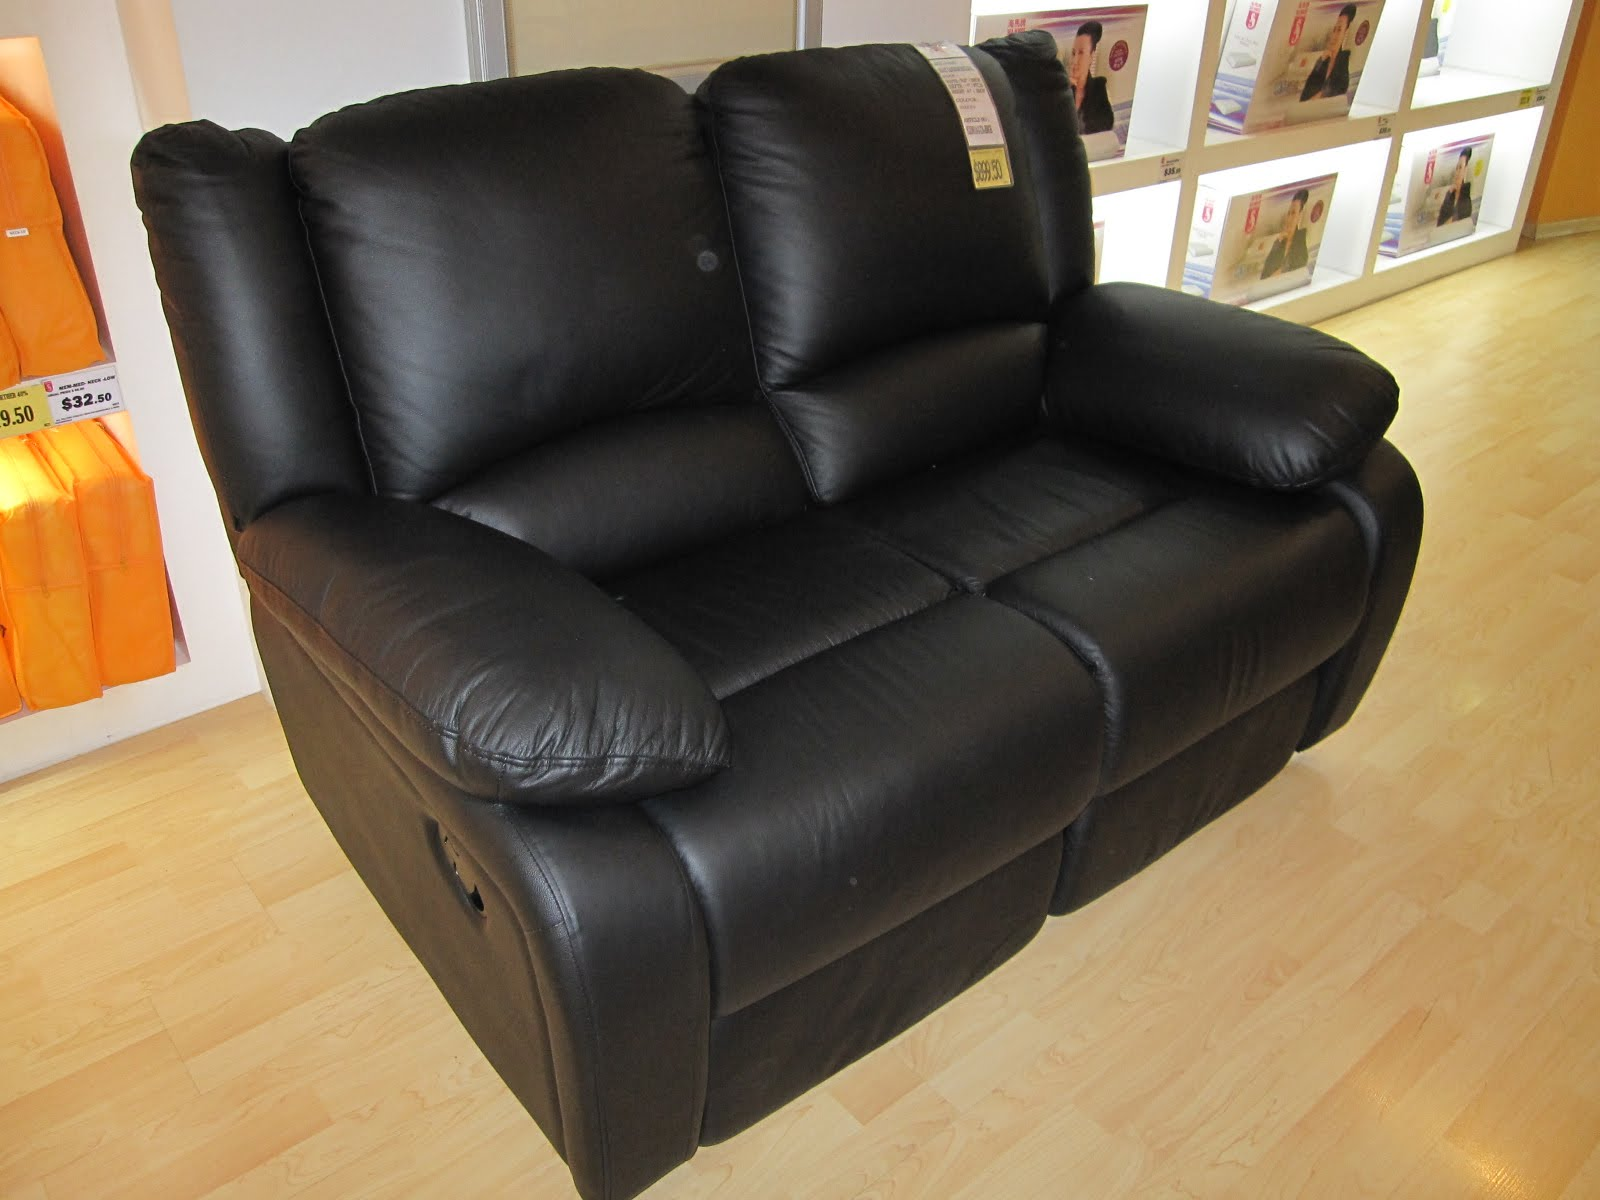 how to get sweat smell out of leather sofa